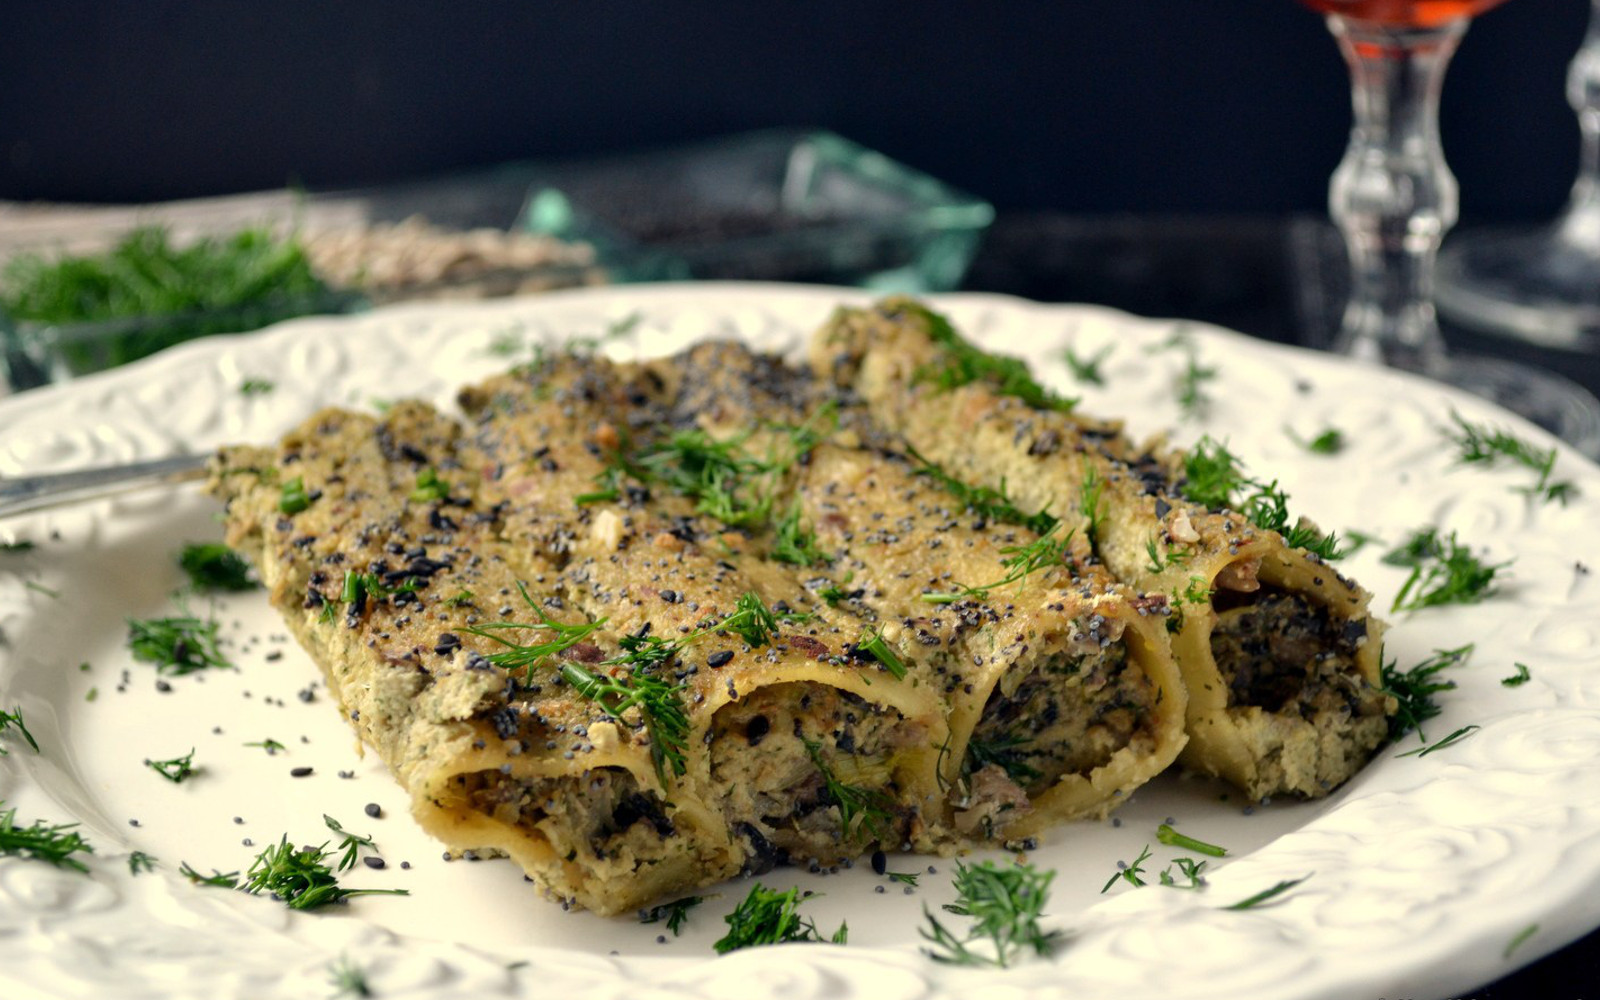 Mushroom Stuffed Cannelloni With Sunflower Seed Cream